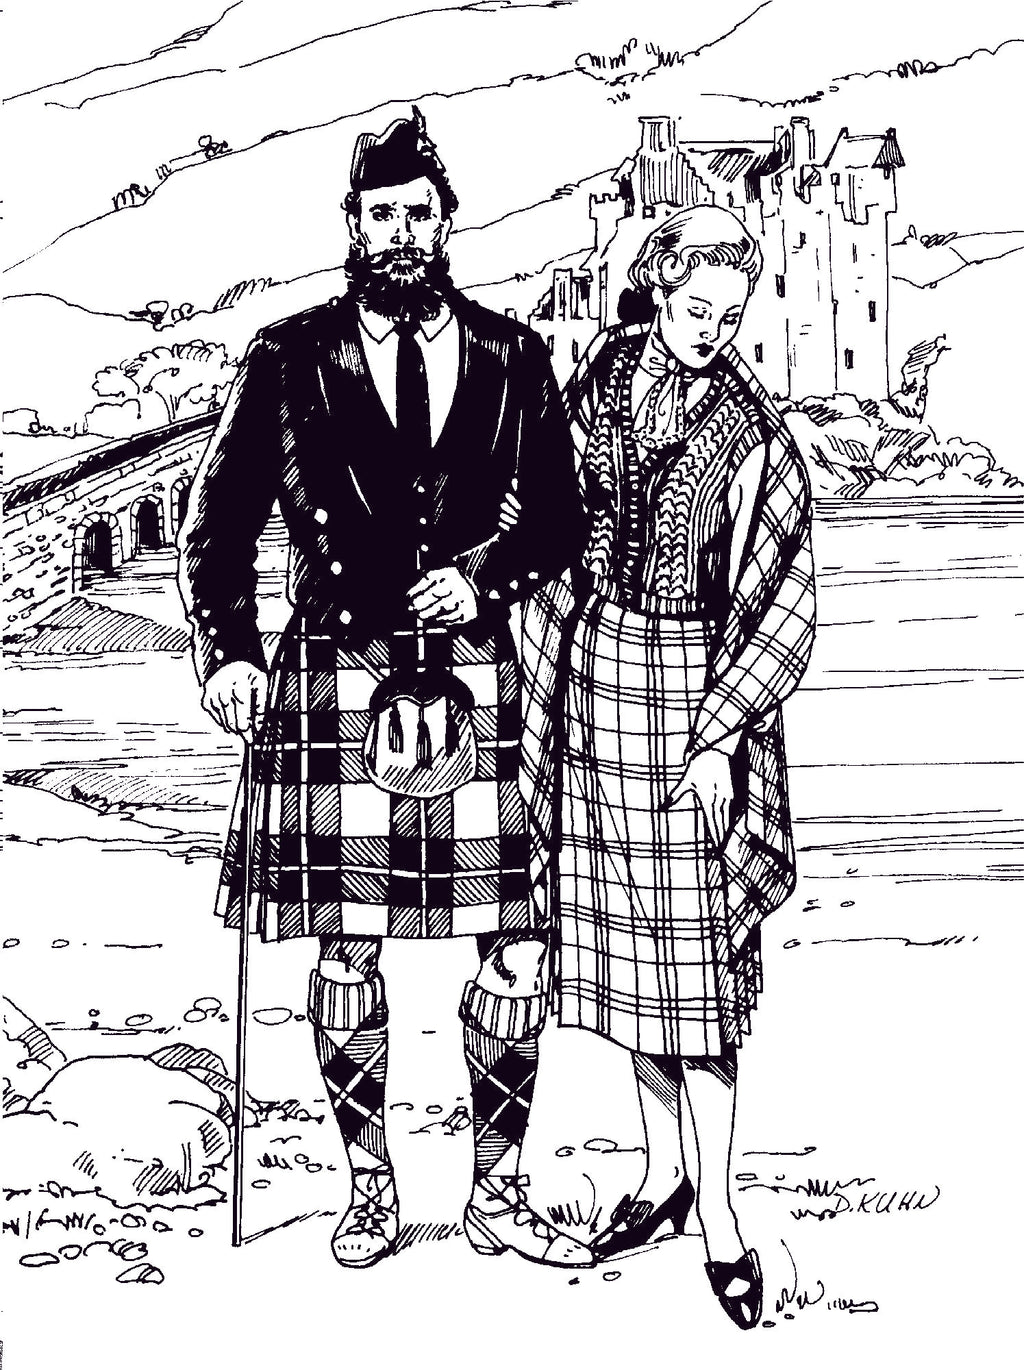 Brief History of the Scottish Kilt